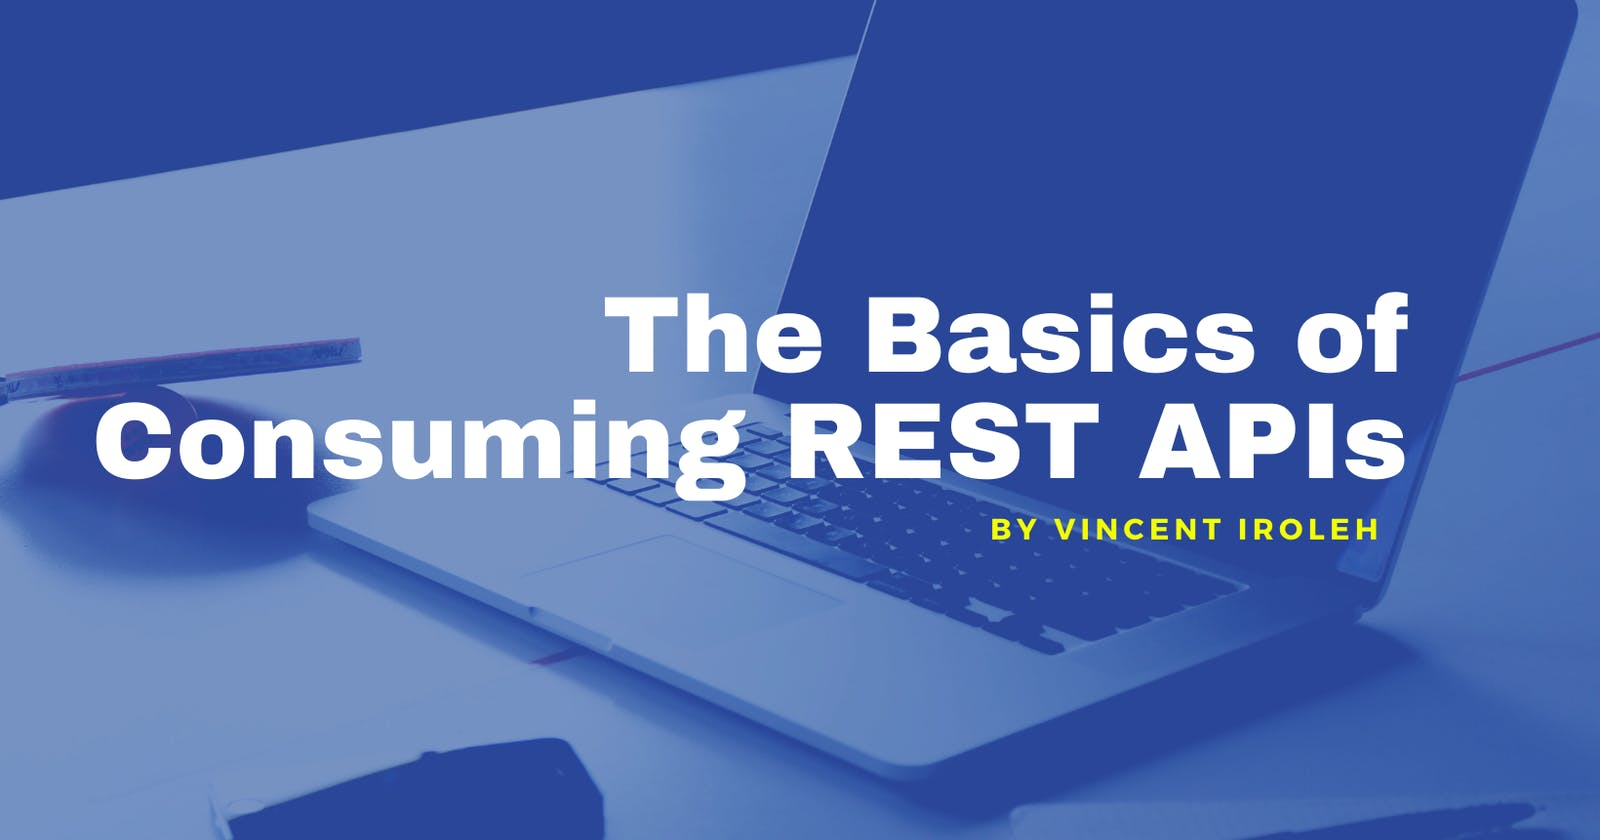 The Basics of Consuming REST APIs